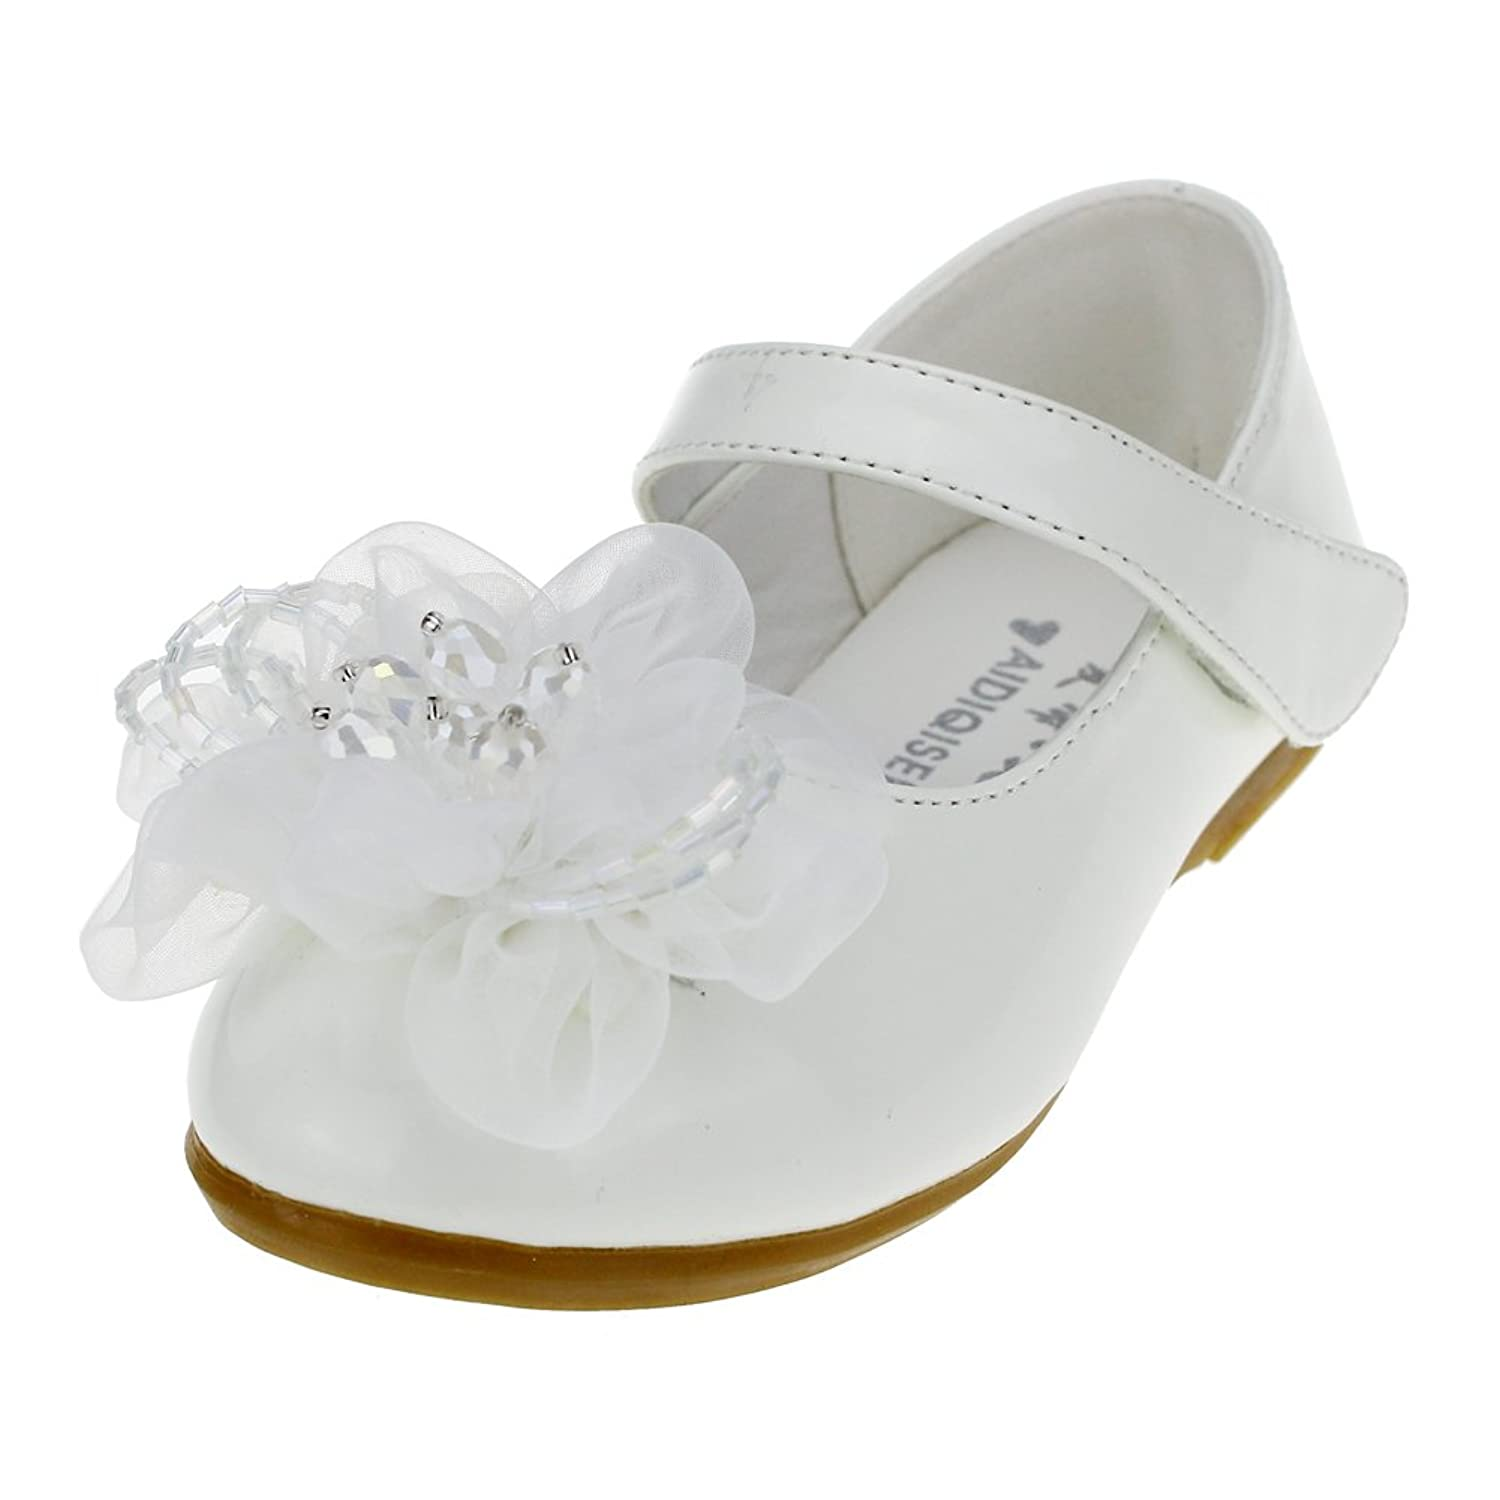 Cixi Maxu E-Commerce.Co.Ltd Maxu Little Girl's PU Dress Flats Flower Party Mary Jane